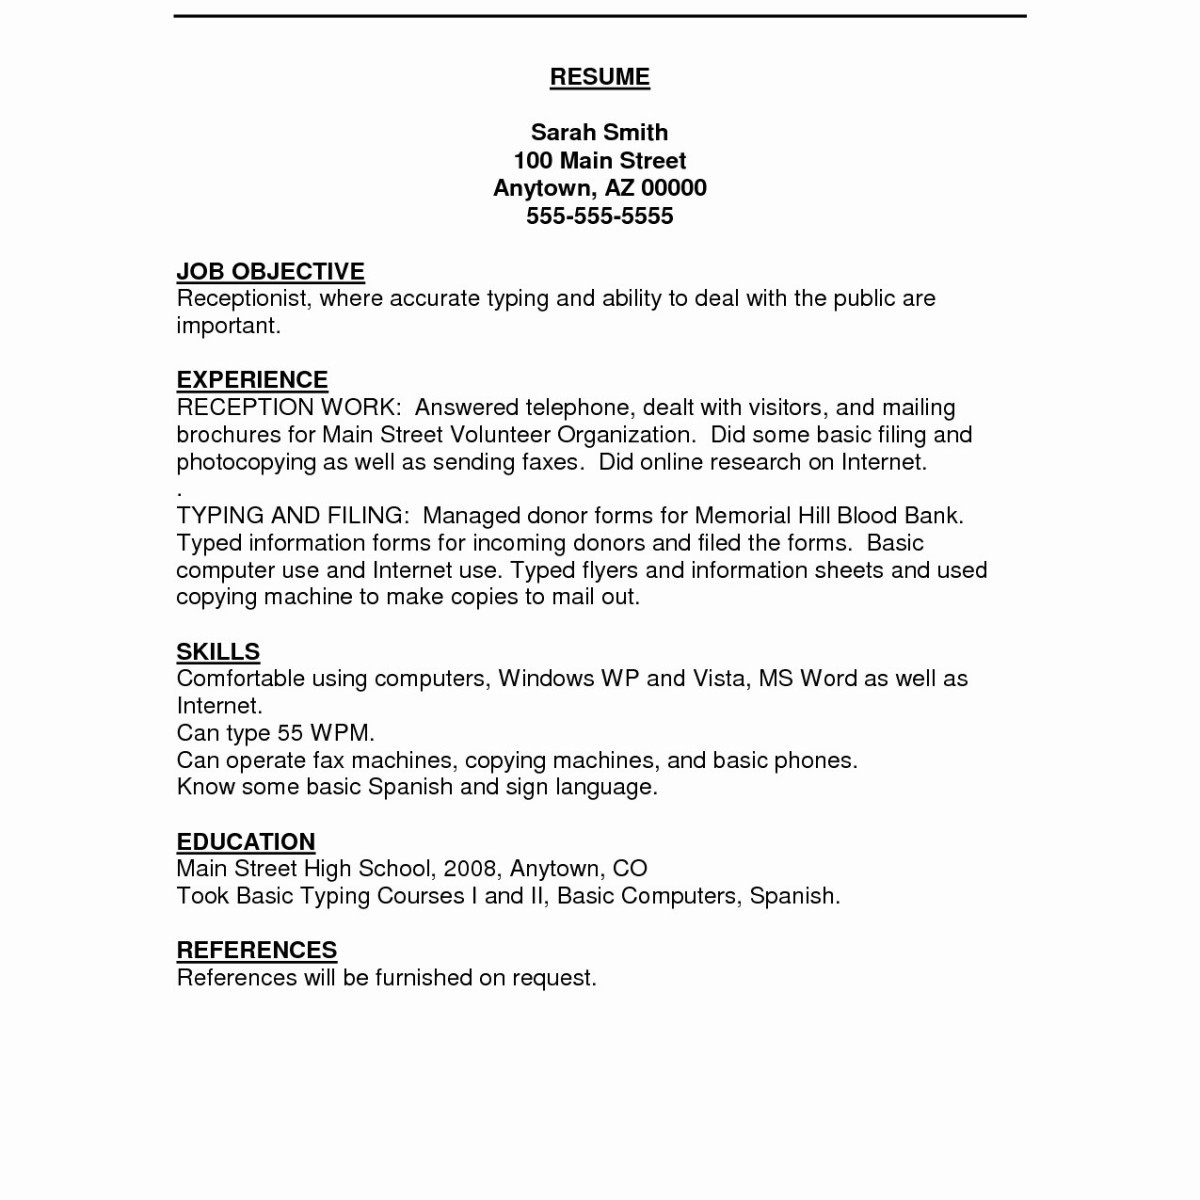 Computer Tech Resume Template - Information Technology Resume Examples Cute Technical Resume